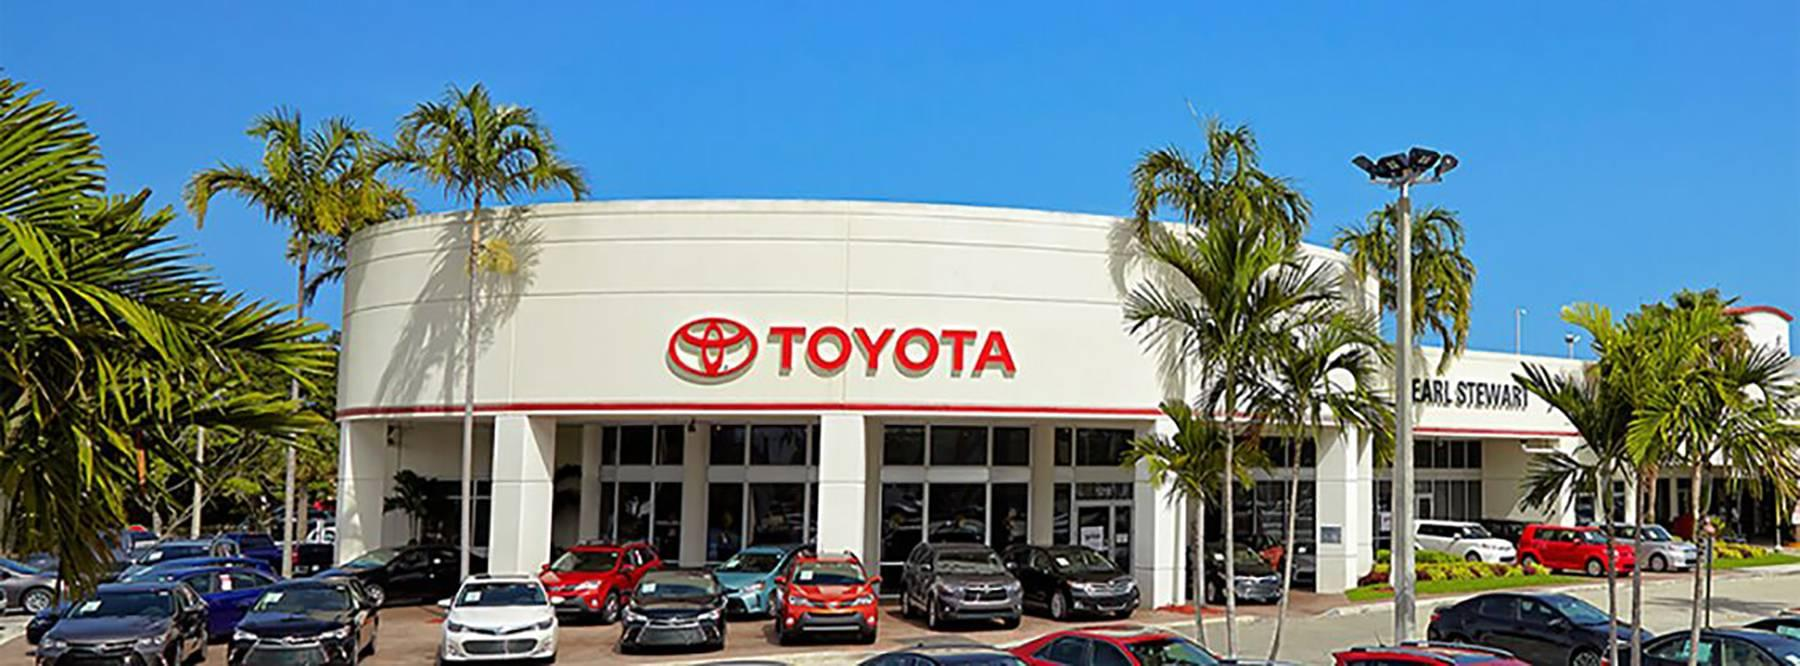 Earl Stewart Toyota Dealership